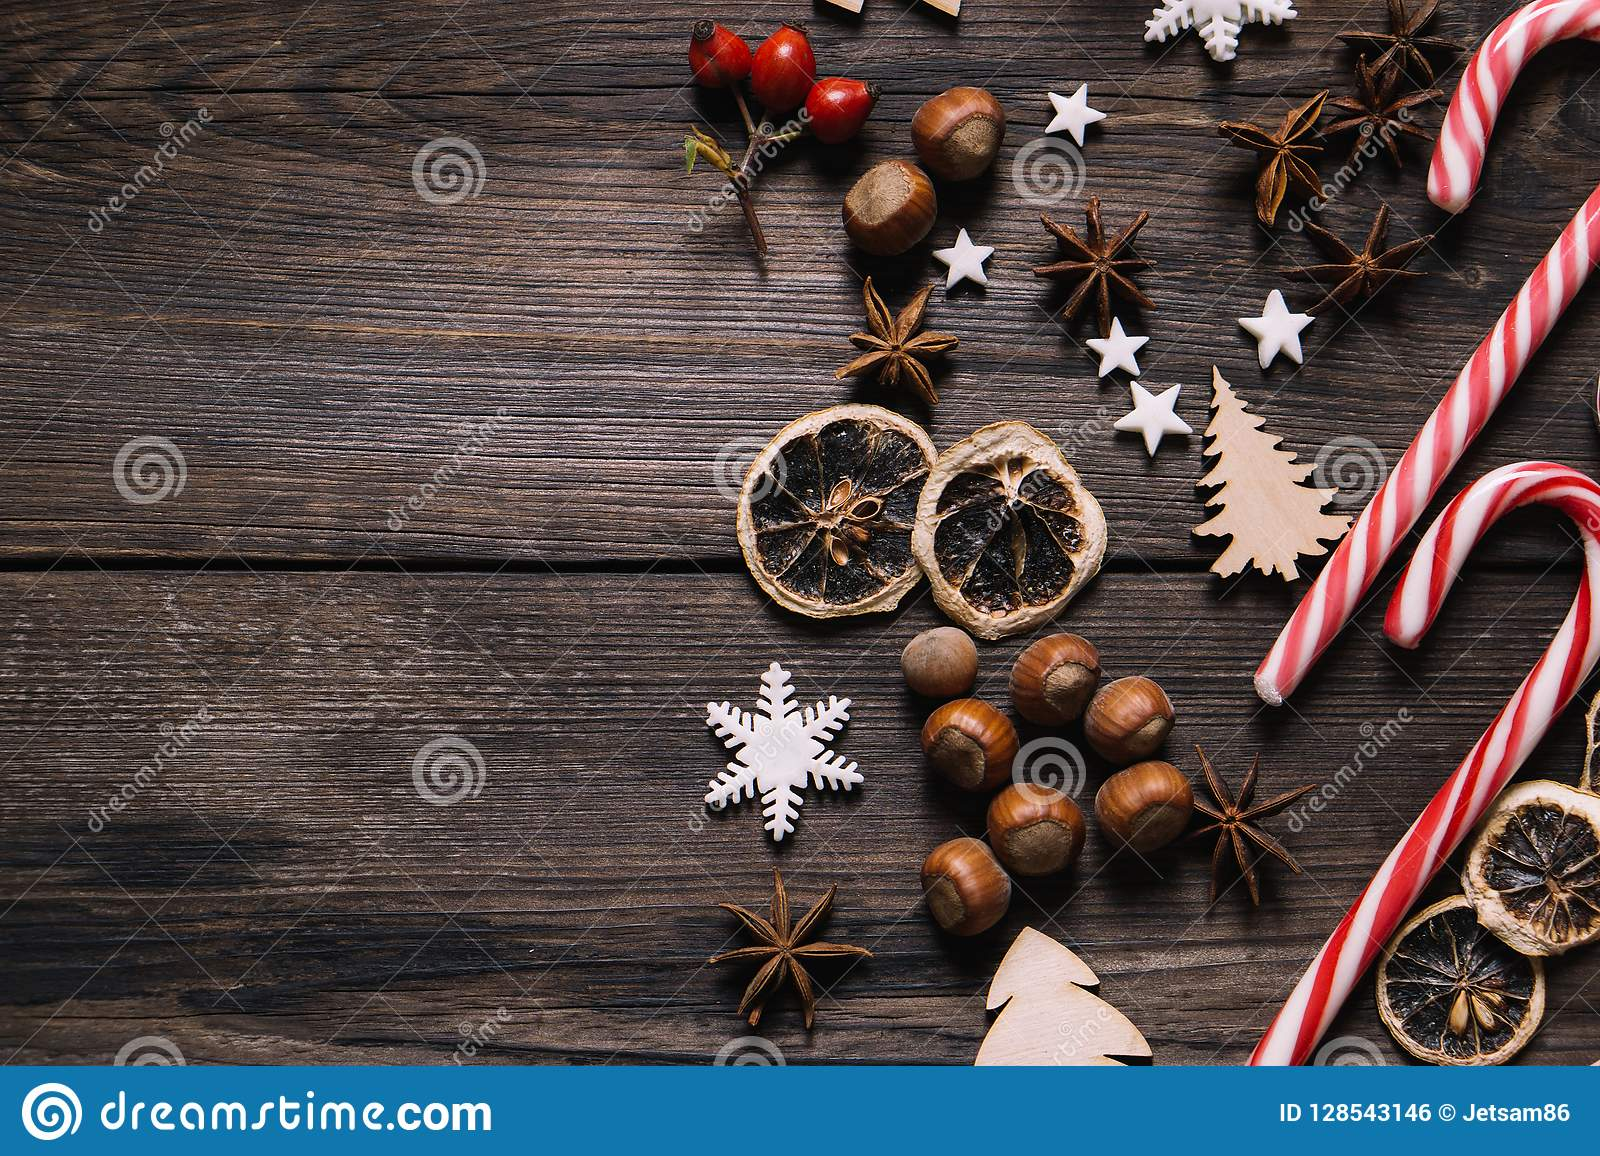 Christmas Decorations, Sweets, Spices Background Stock ...